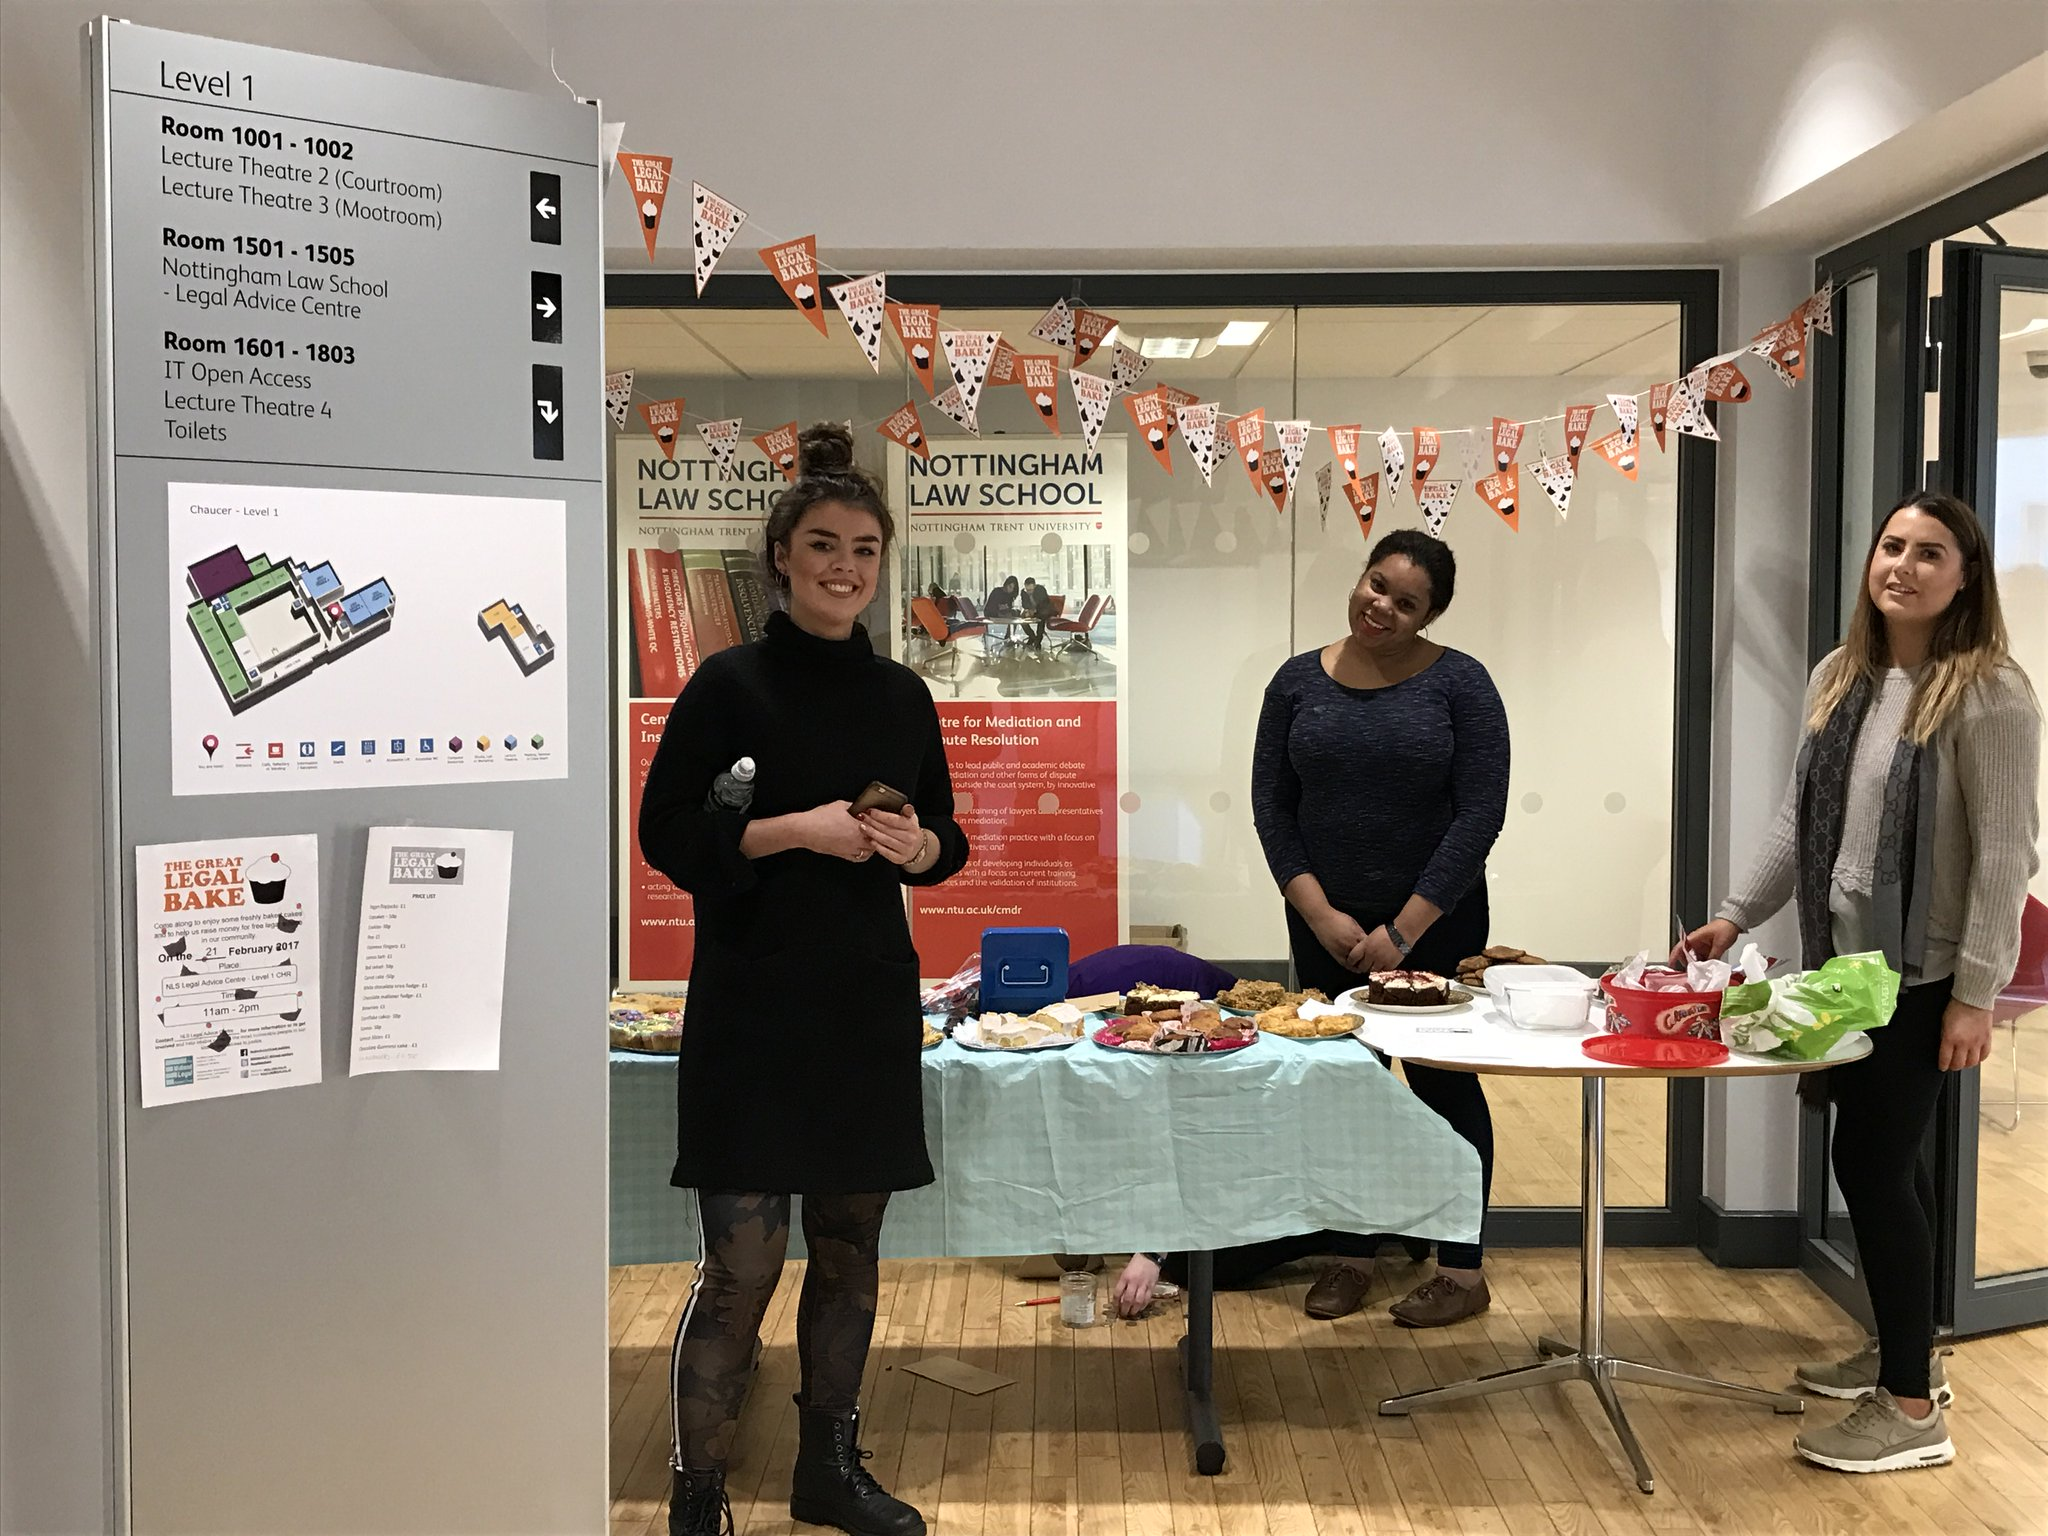 Another shot of our @greatlegalbake bake sale - there's still cakes available in Chaucer, but best be quick @TrentUni @LawNLS @NTUYouFirst https://t.co/9WUHk19keq